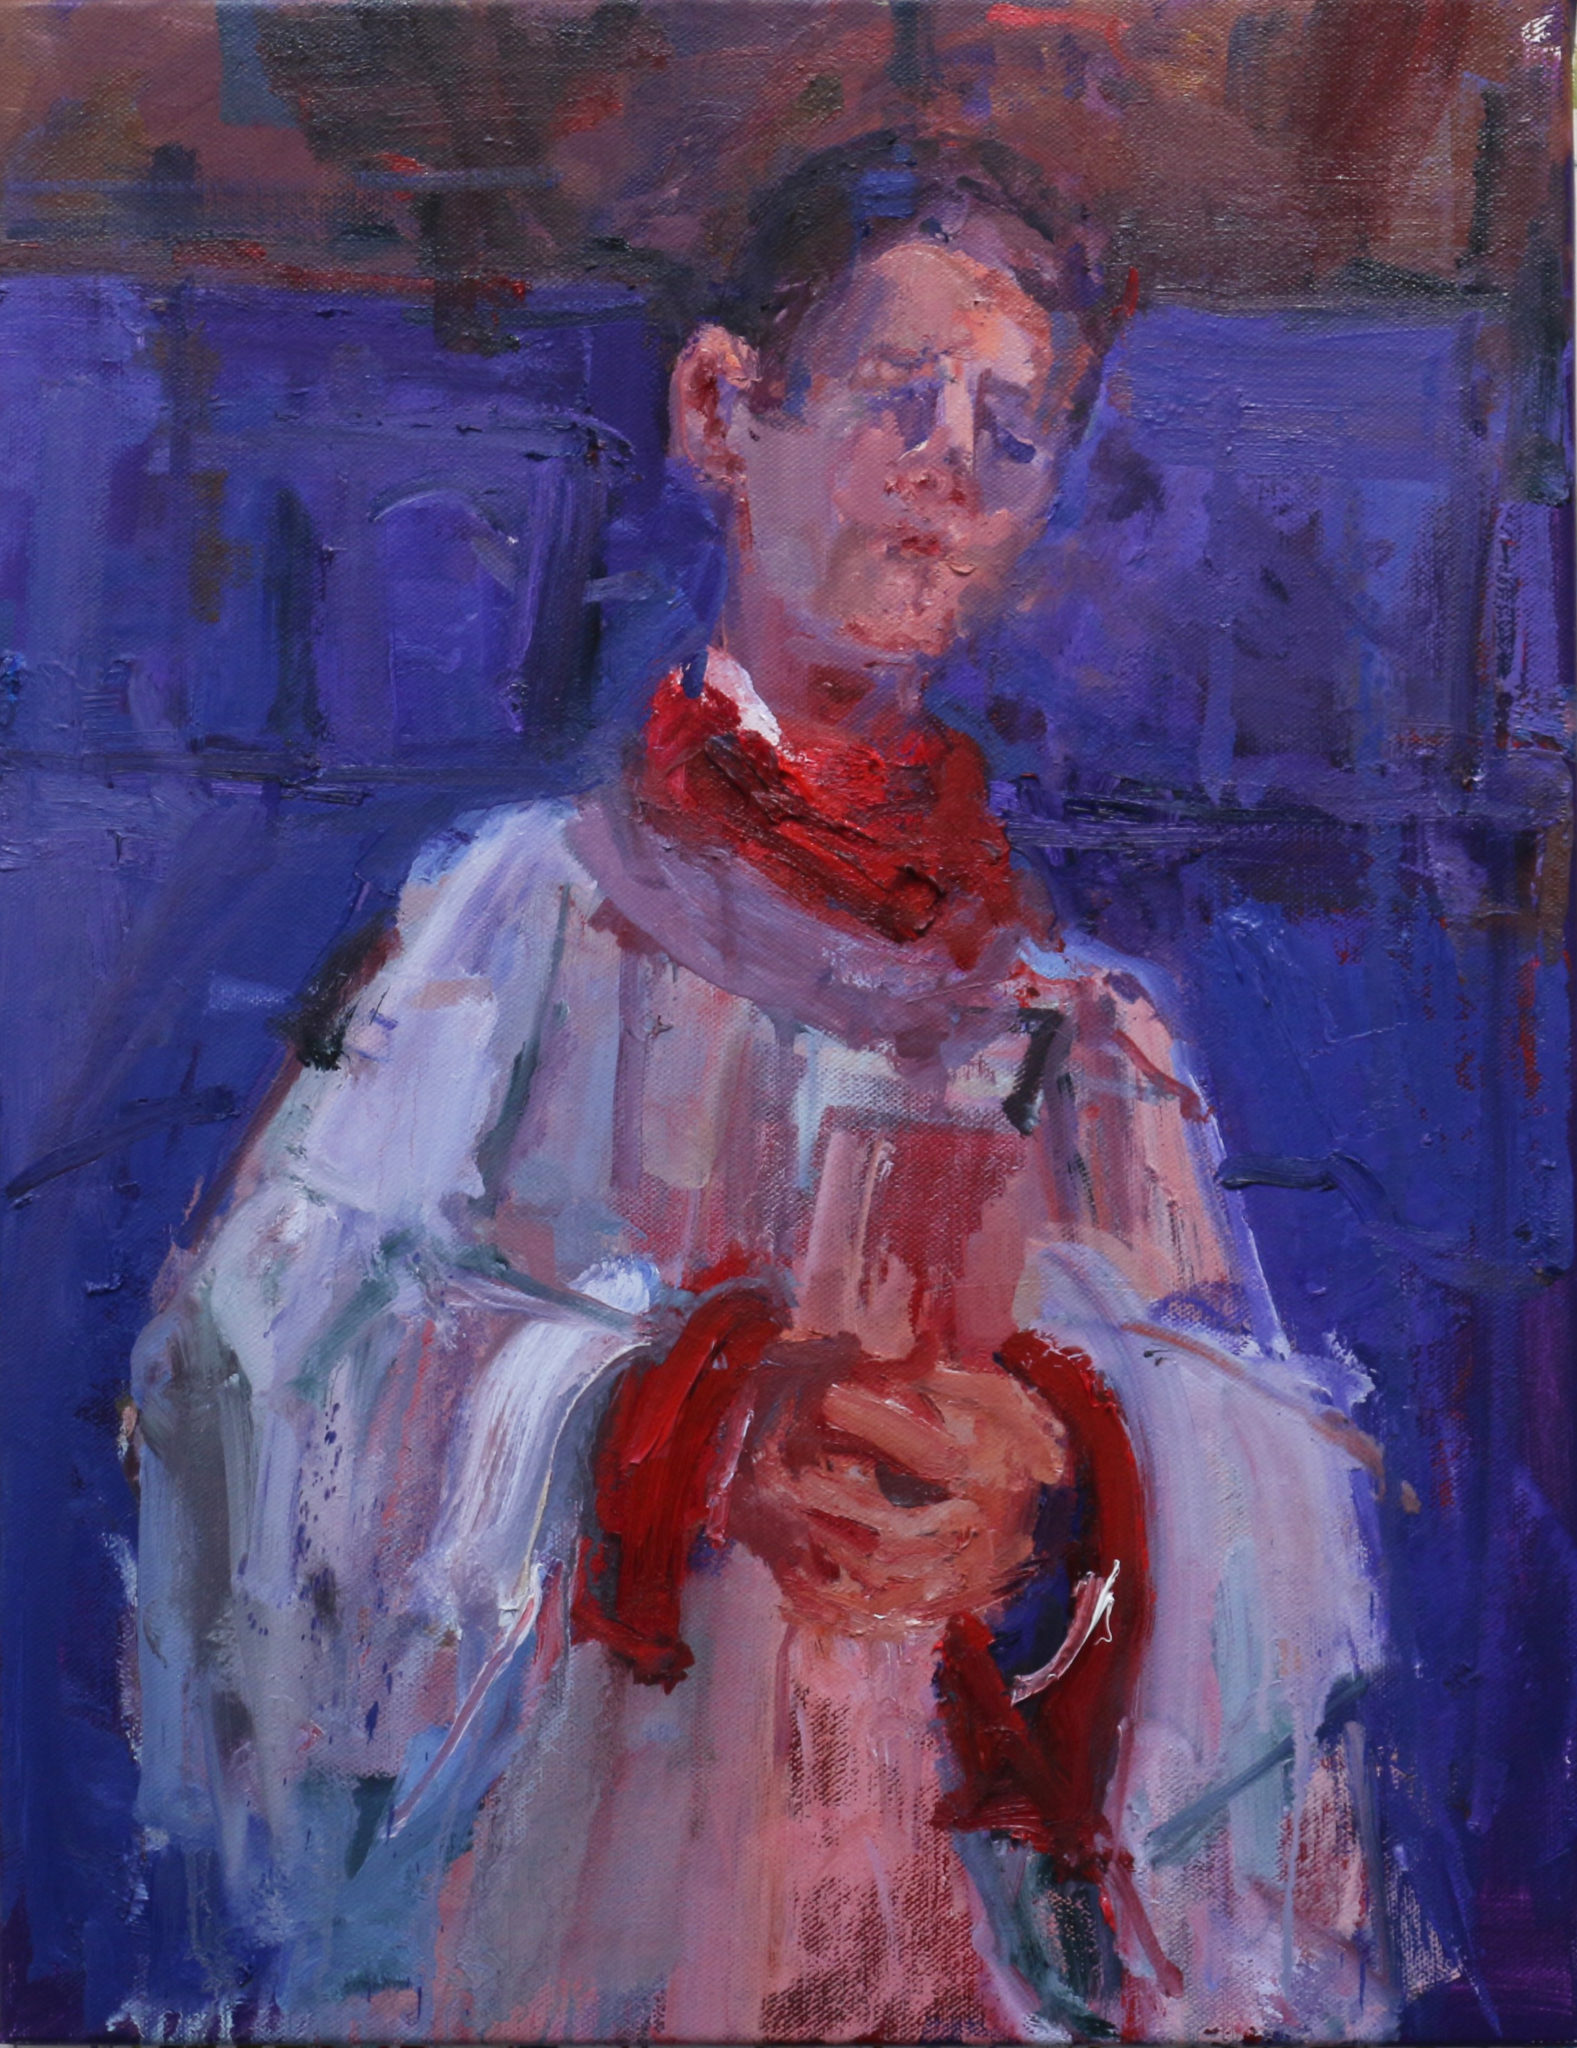 Choir Boy - Homage to Soutine 1